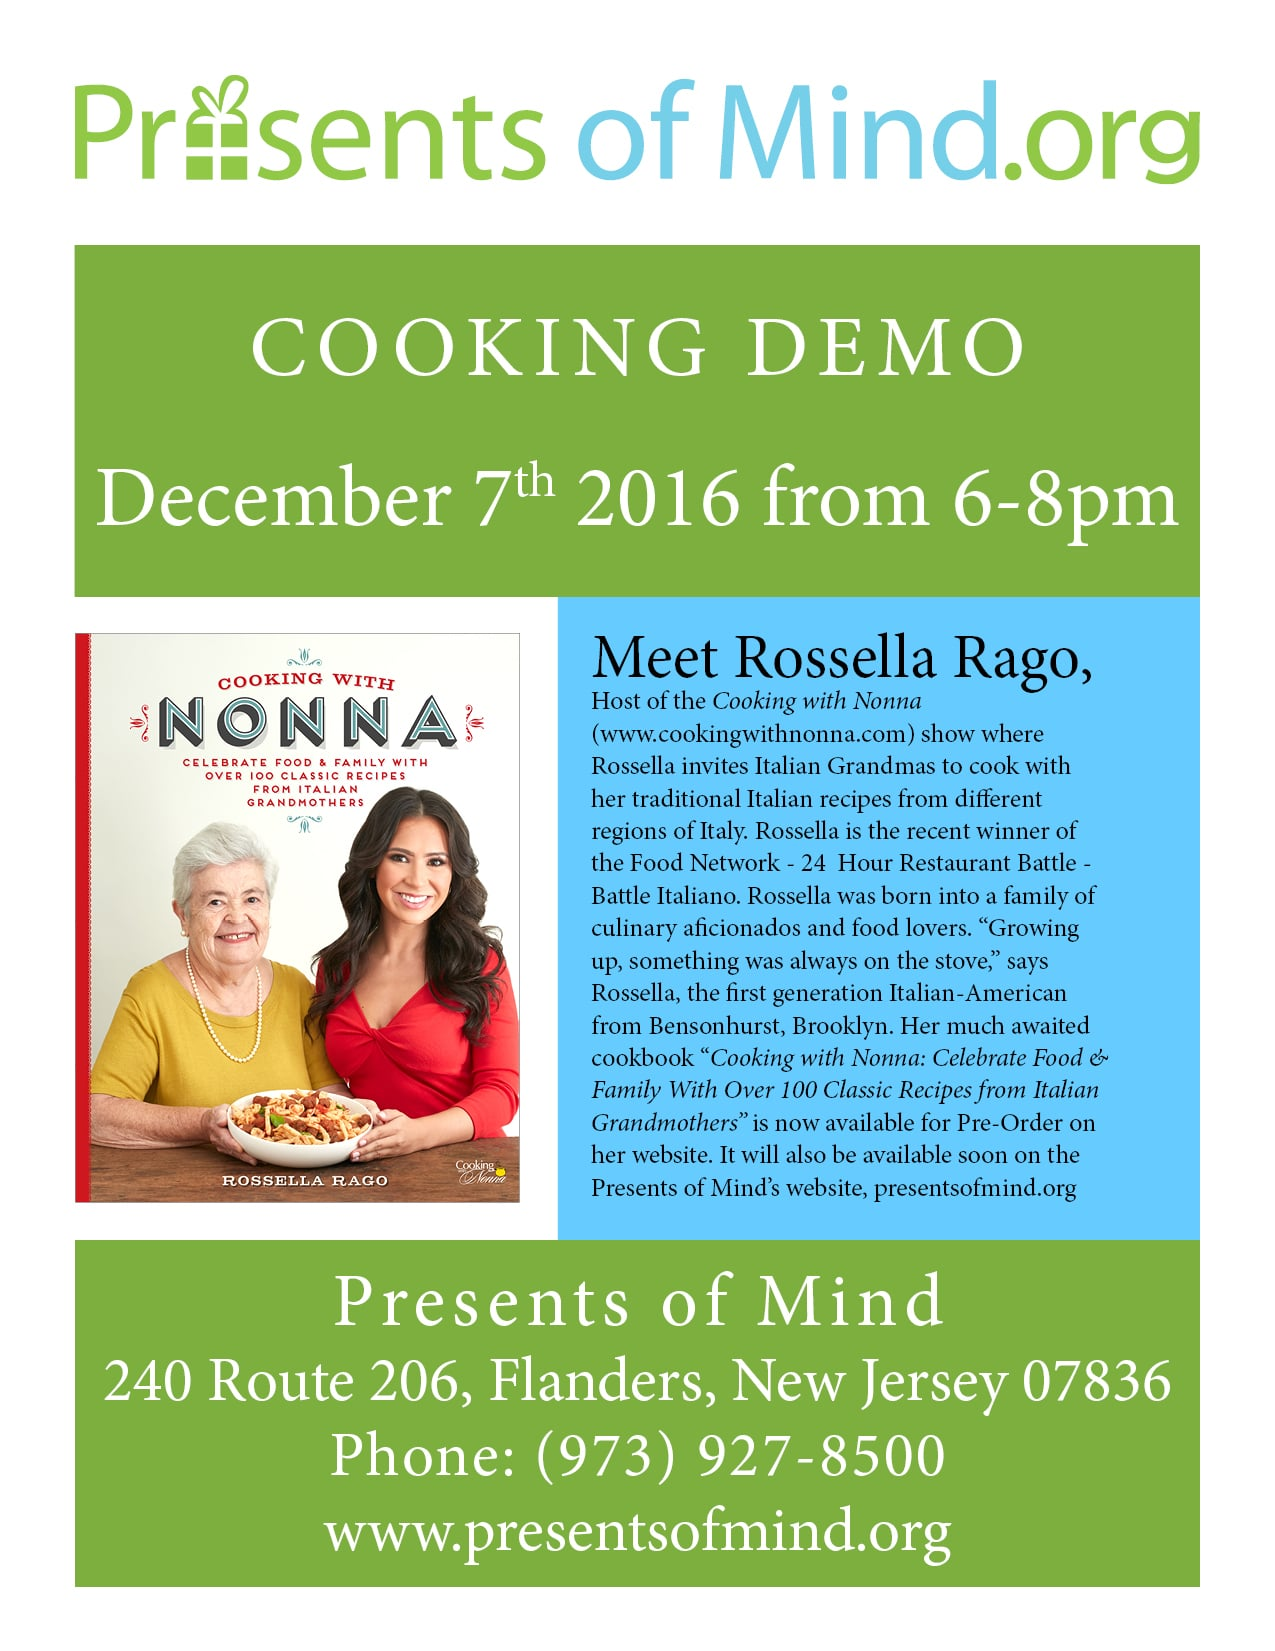 """Cooking Demo December 7th 2016 from 6-8pm Meet Rossella Rago, Host of the Cooking with Nonna (www.cookingwithnonna.com) show where Rossella invites Italian Grandmas to cook with her traditional Italian recipes from different regions of Italy. Rossella is the recent winner of the Food Network - 24 Hour Restaurant Battle - Battle Italiano. Rossella was born into a family of culinary aficionado's and food lovers. """"Growing up, something was always on the stove,"""" says Rossella, the first generation Italian-American from Bensonhurst, Brooklyn. Her much awaited cookbook """"Cooking with Nonna: Celebrate Food & Family With Over 100 Classic Recipes from Italian Grandmothers"""" is now available for Pre-Order. Presents of Mind 240 Route 206, Flanders, New Jersey 07836 Phone: (973) 927-8500"""